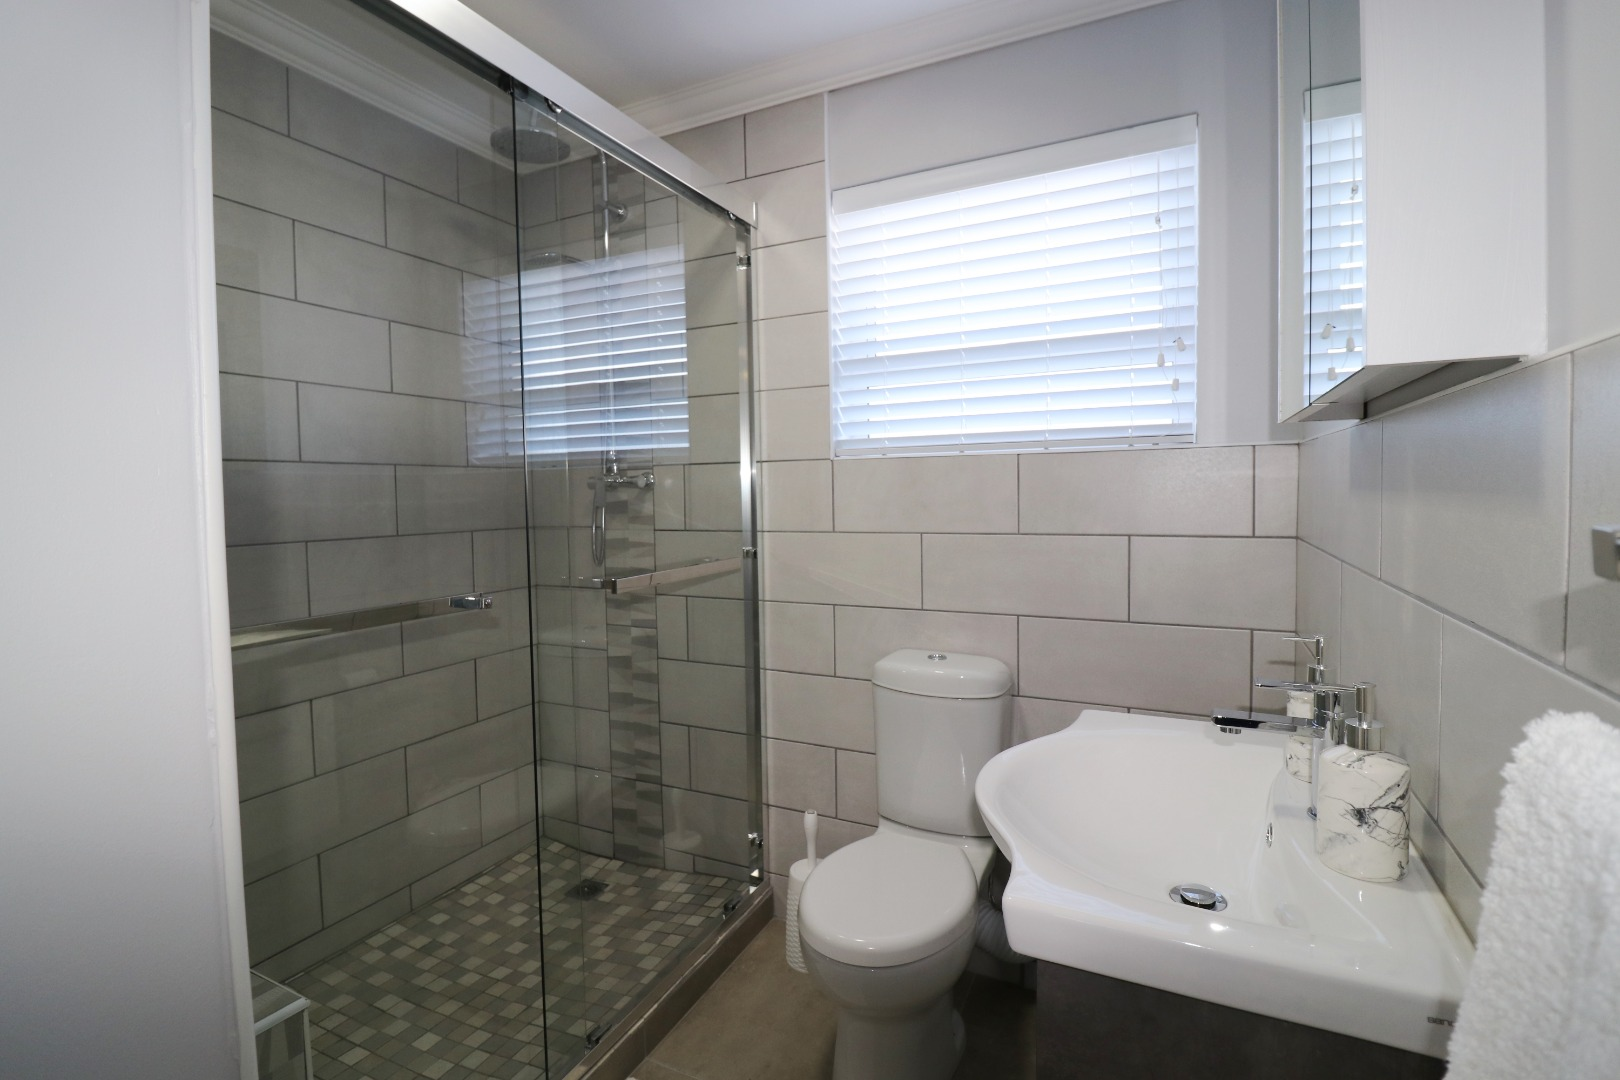 2 Bedroom House For Sale in Yzerfontein